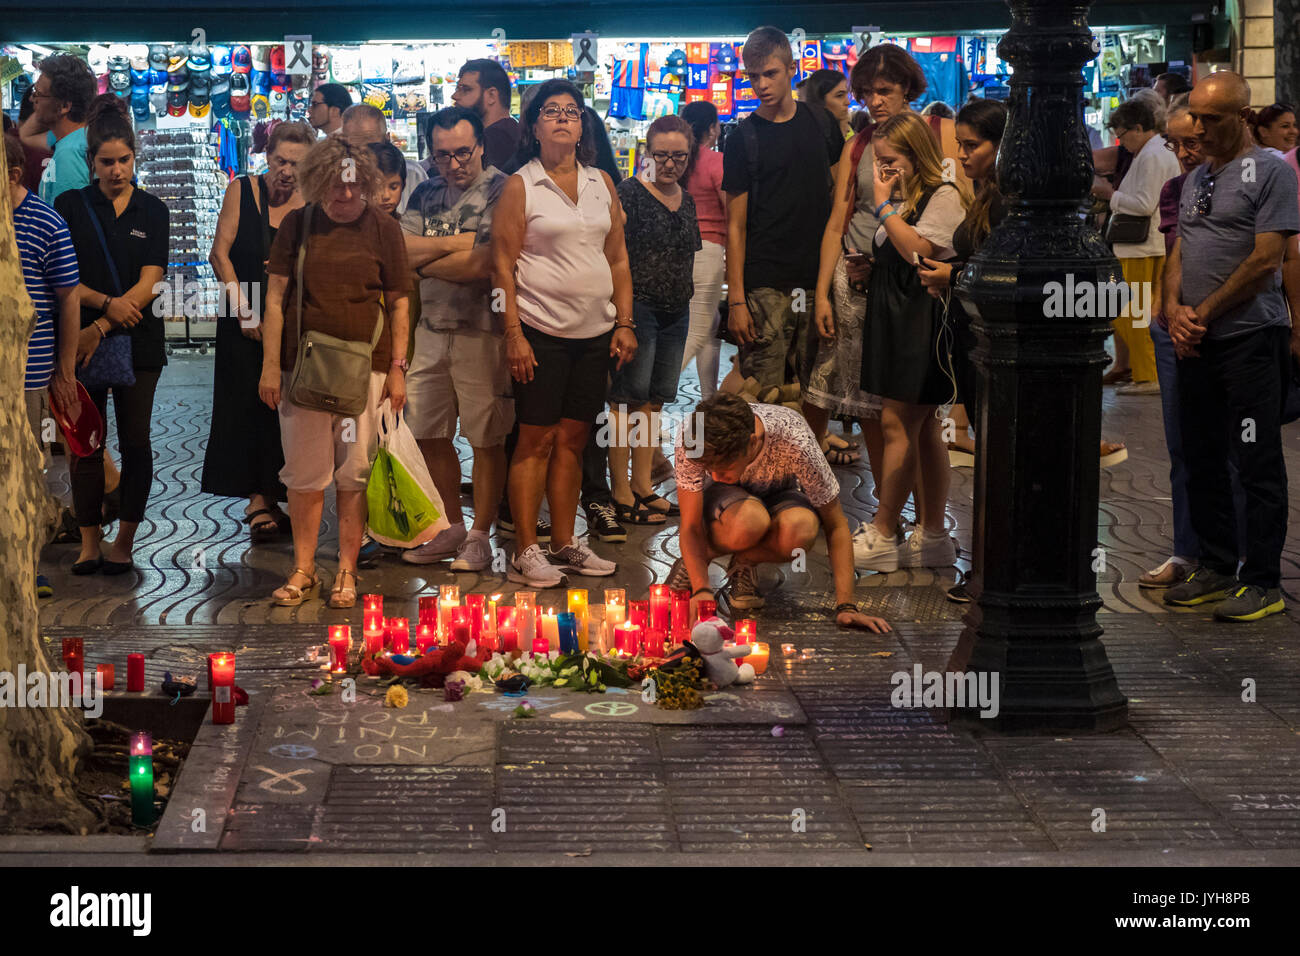 Barcelona, Spain. 19th Aug, 2017. On 19 August 2017 the city of Barcelona suffered the ISIS terrorist attack, with - Stock Image